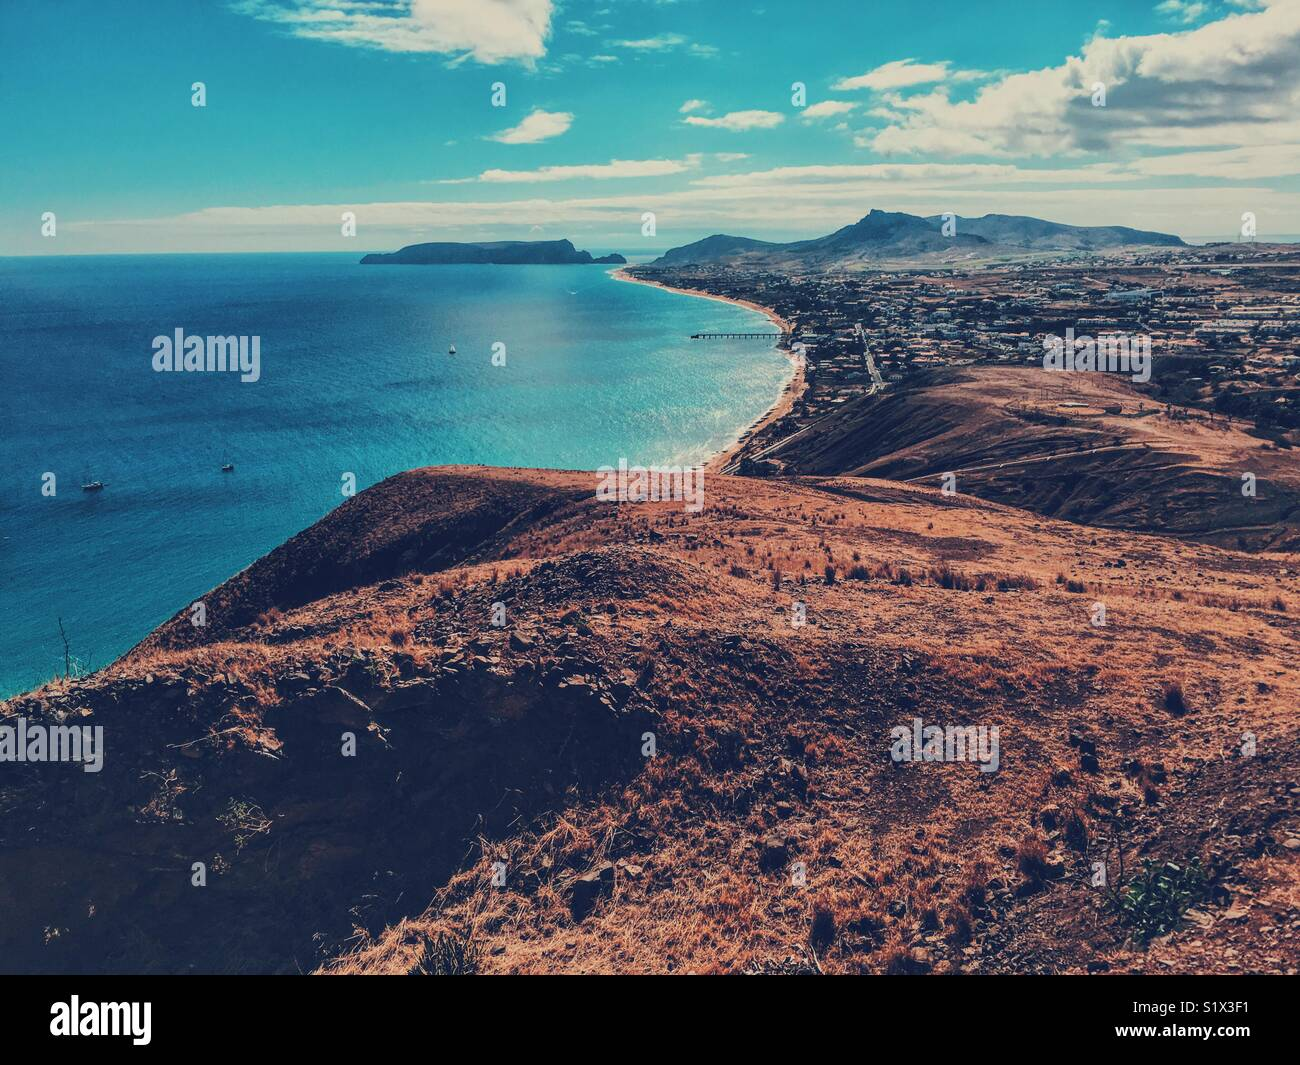 Landscape photography in Porto Santo - Stock Image